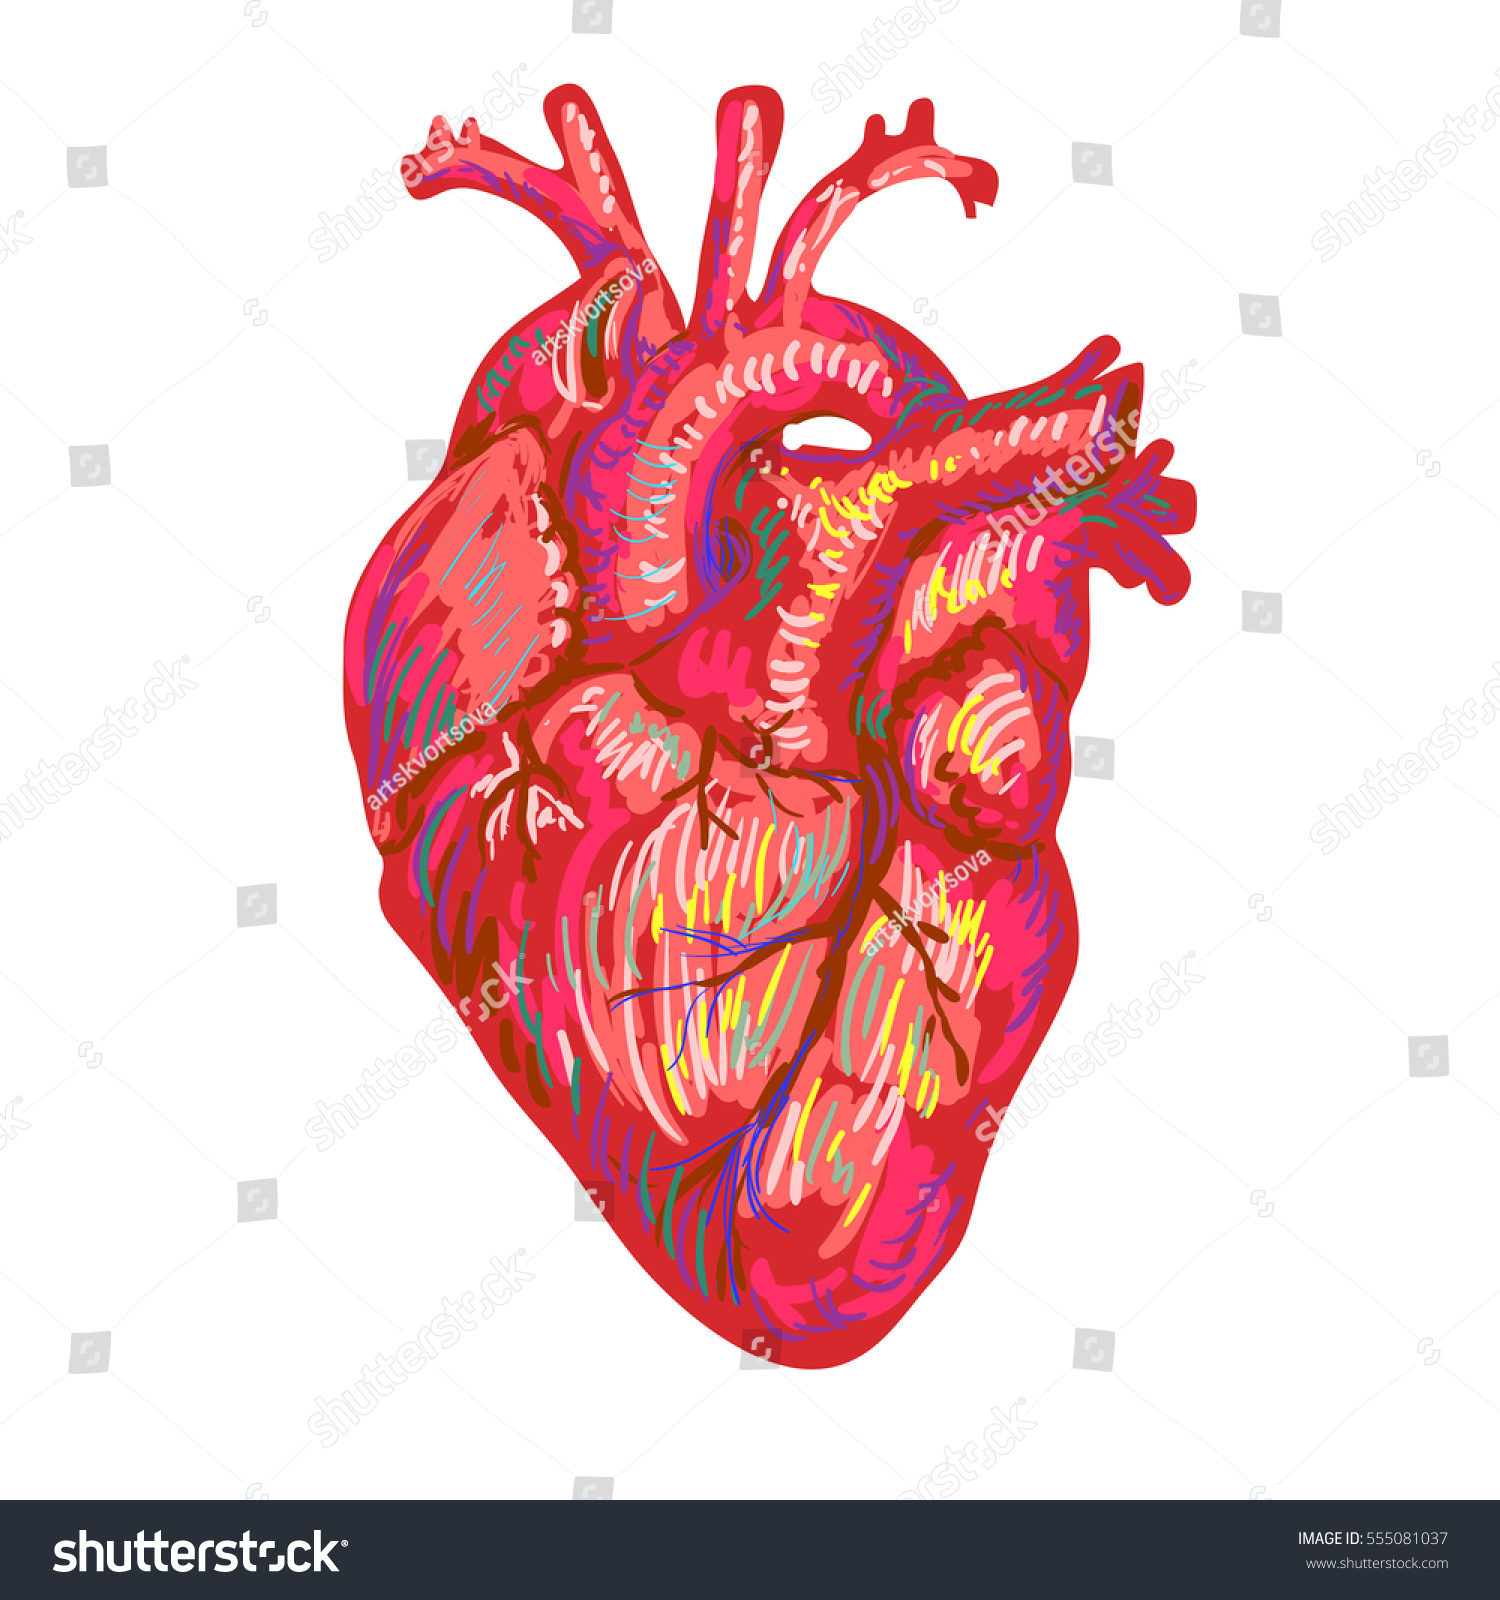 Human Heart Sketch Design Medical Anatomical Stock Vector Royalty